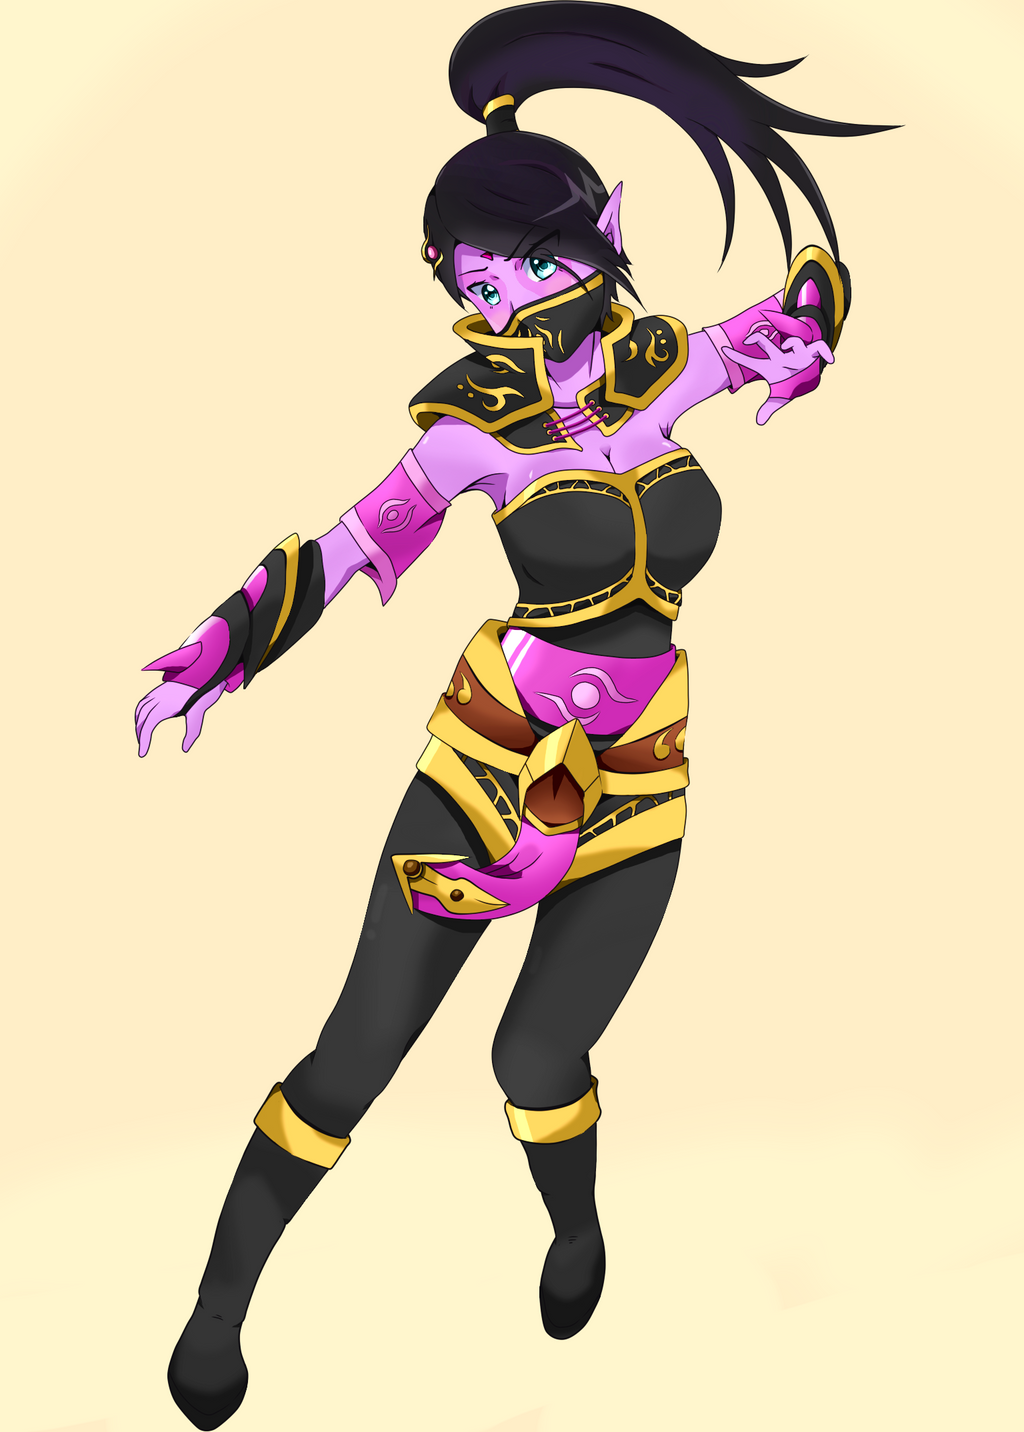 Templar assassin dota 2 by arief7 on DeviantArt